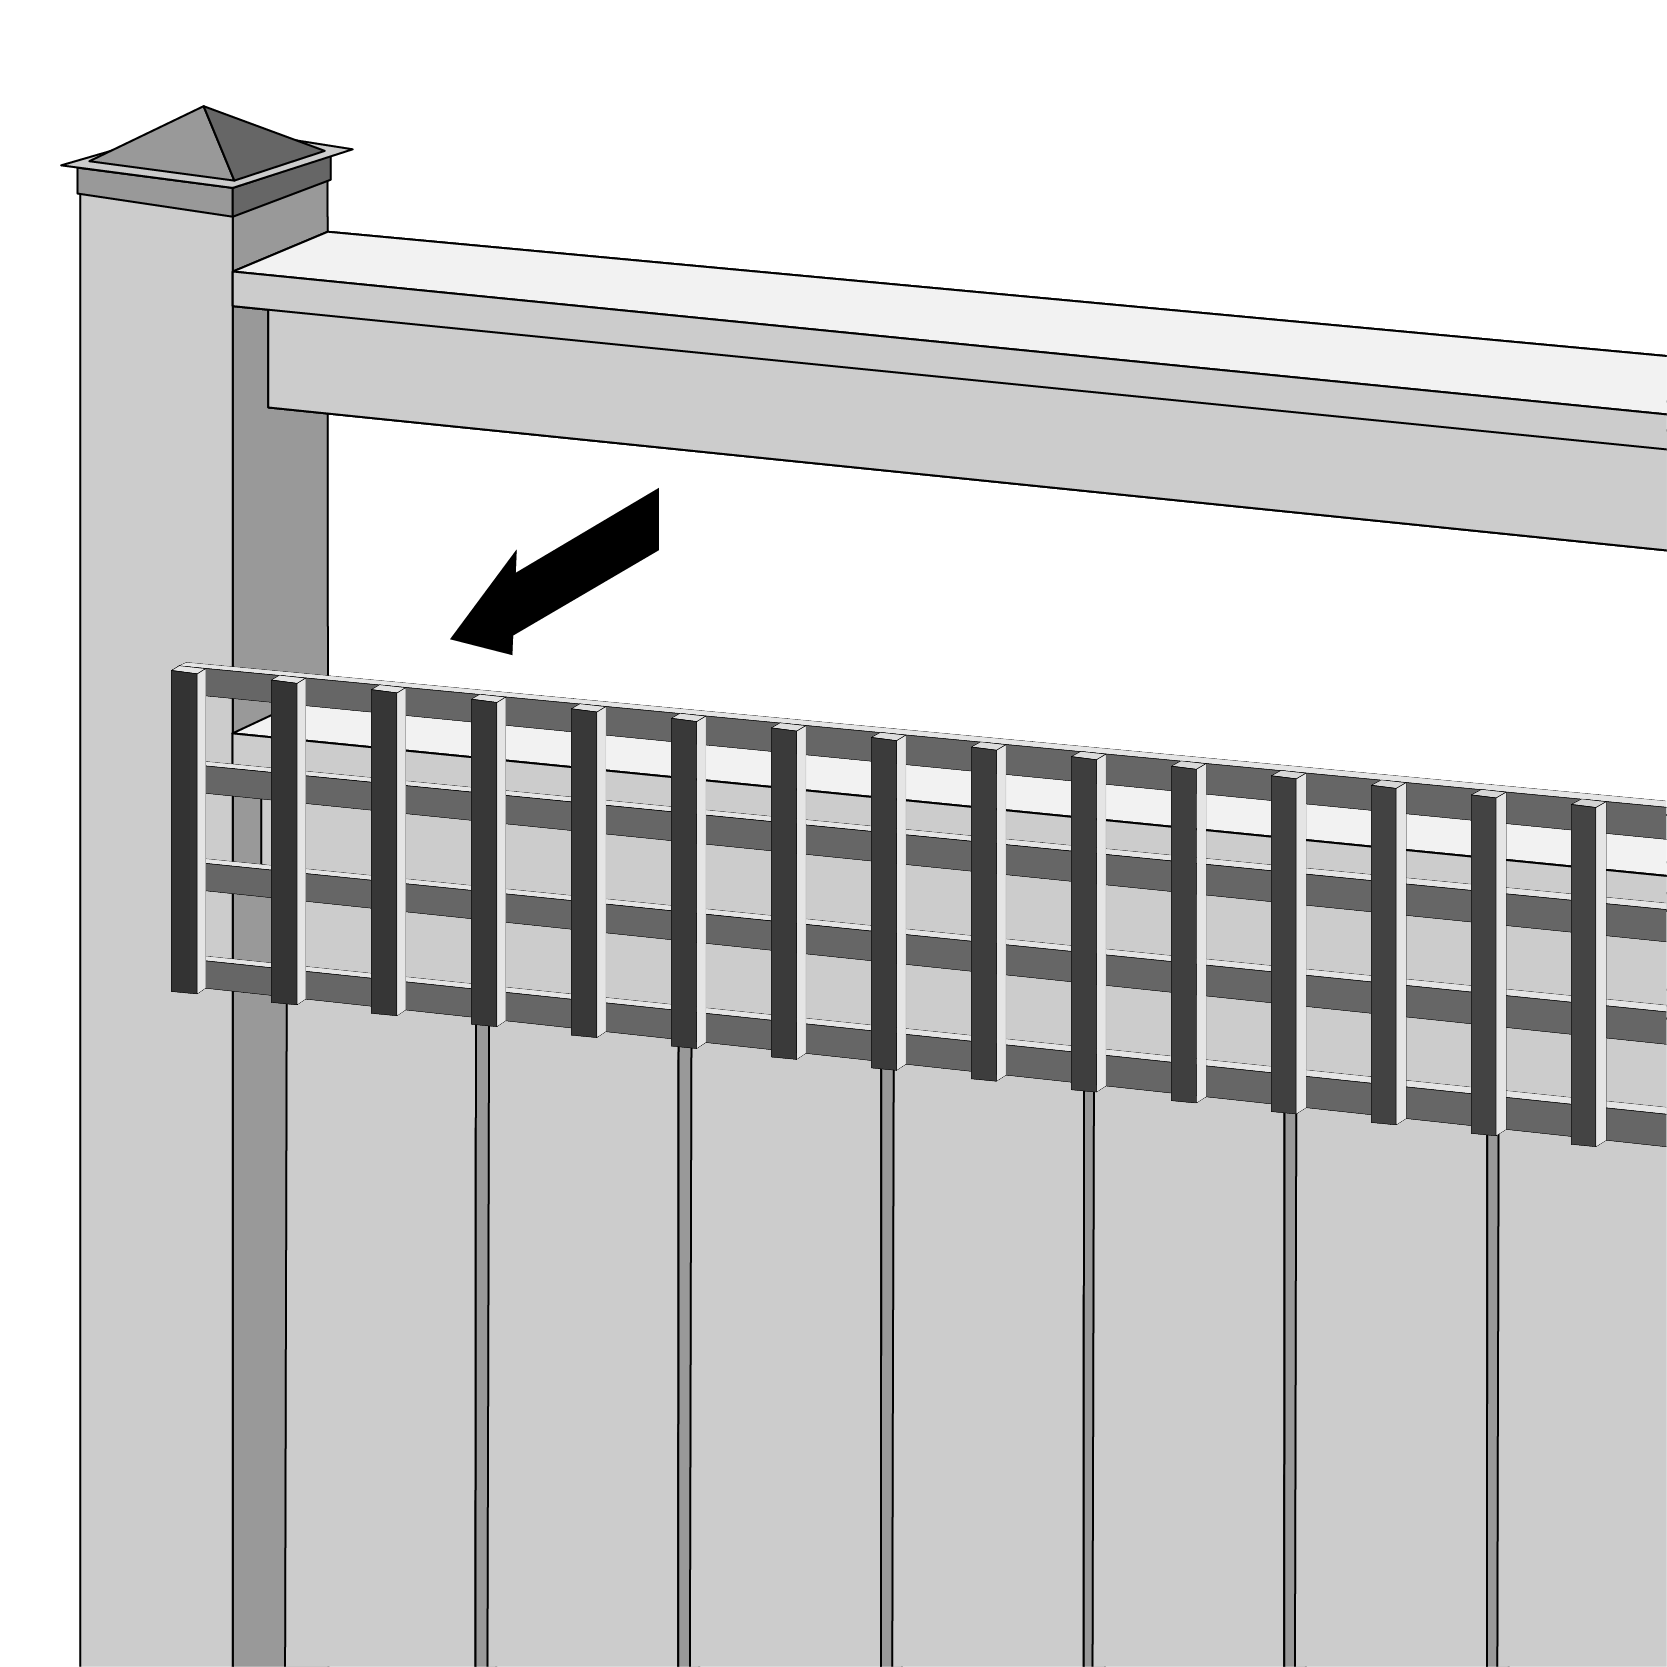 Fence Toppers Are Perfect For Updating a Worn Out Fence